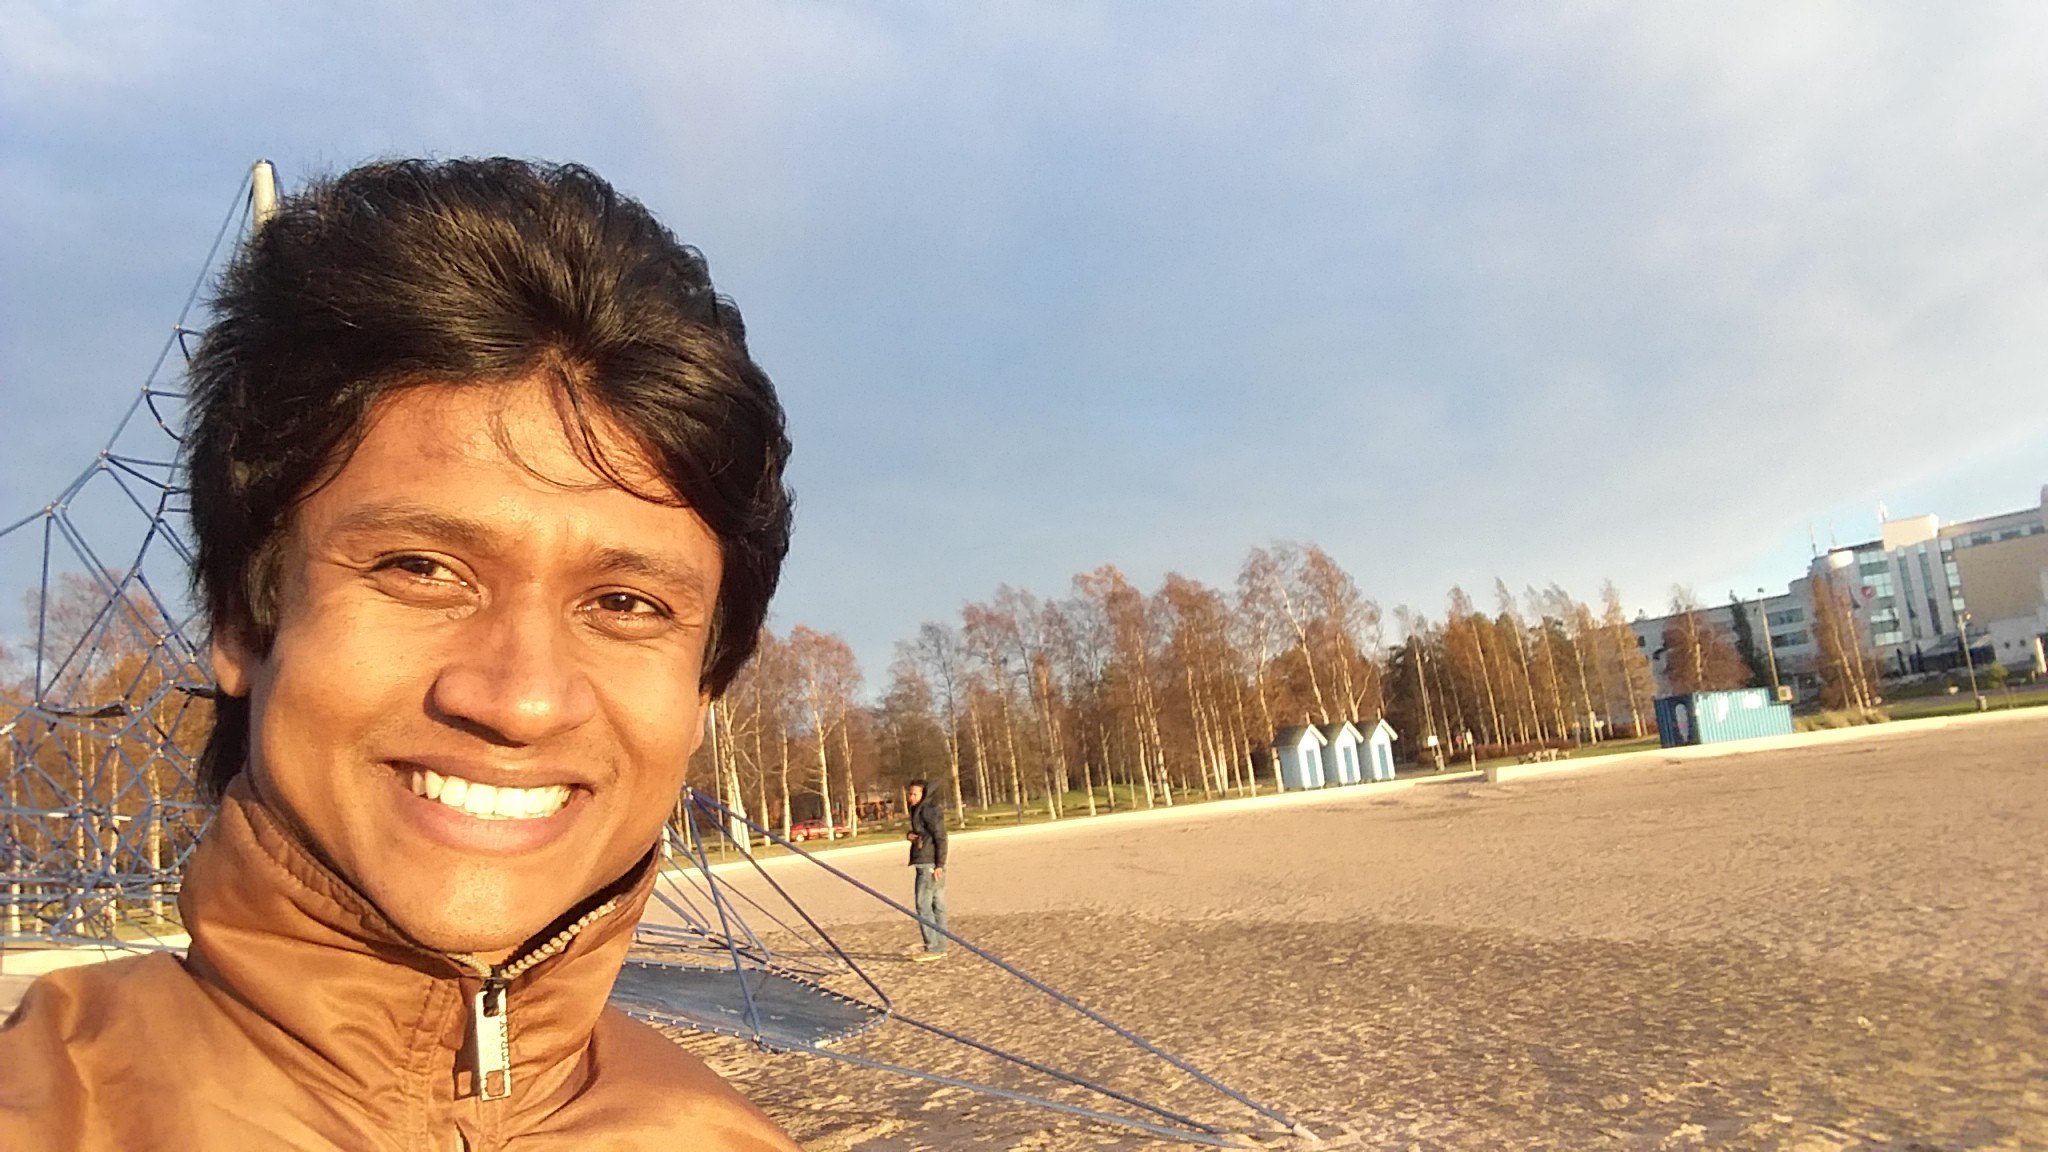 2 Things I Learned After Living for 2 Years in Finland